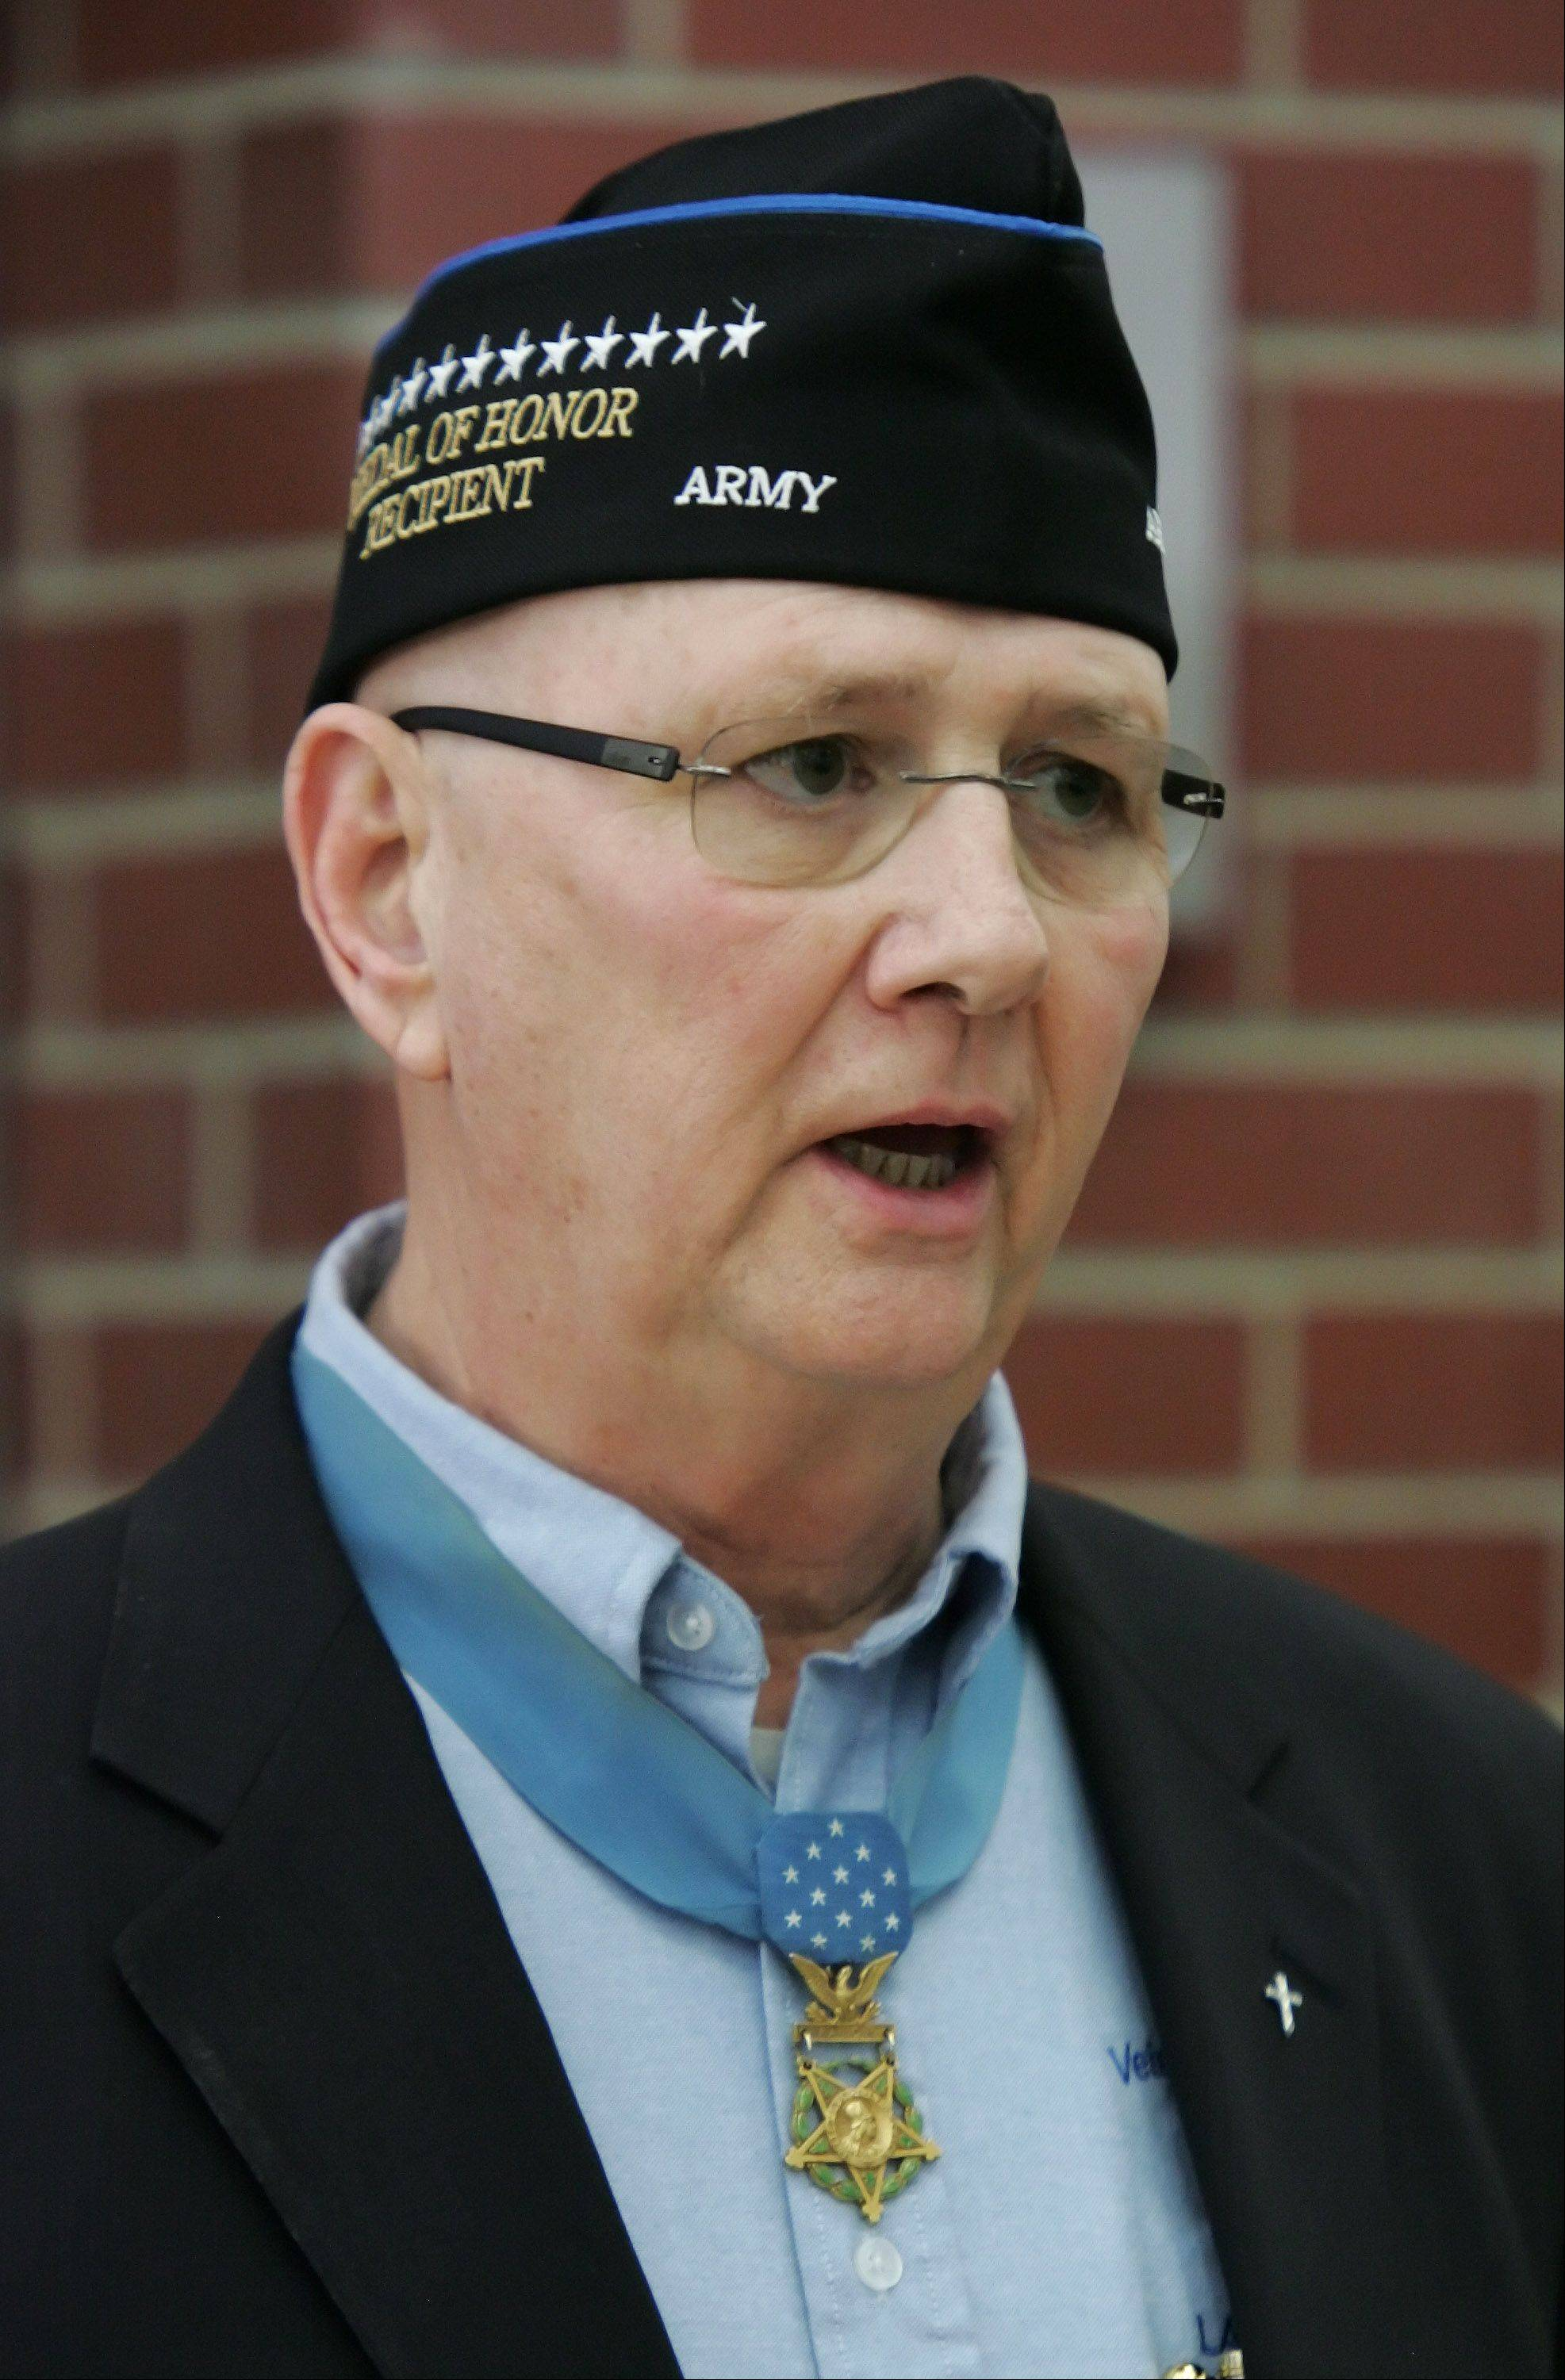 Allen Lynch of Gurnee received the Medal of Honor for his heroics during the Vietnam War.